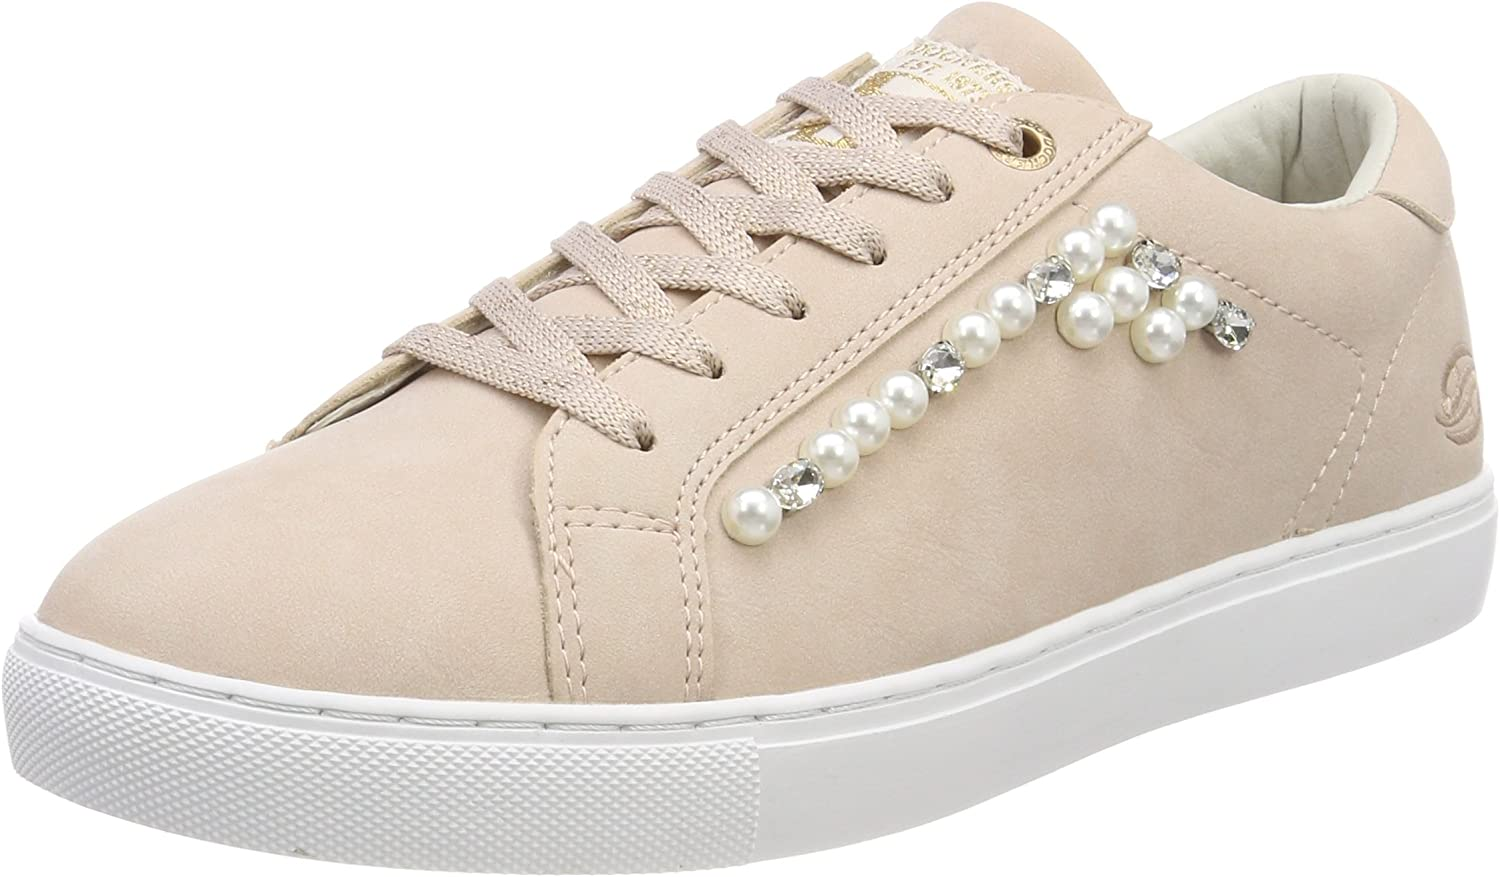 Dockers by Gerli Women's 38pd212-630760 Low-Top Sneakers